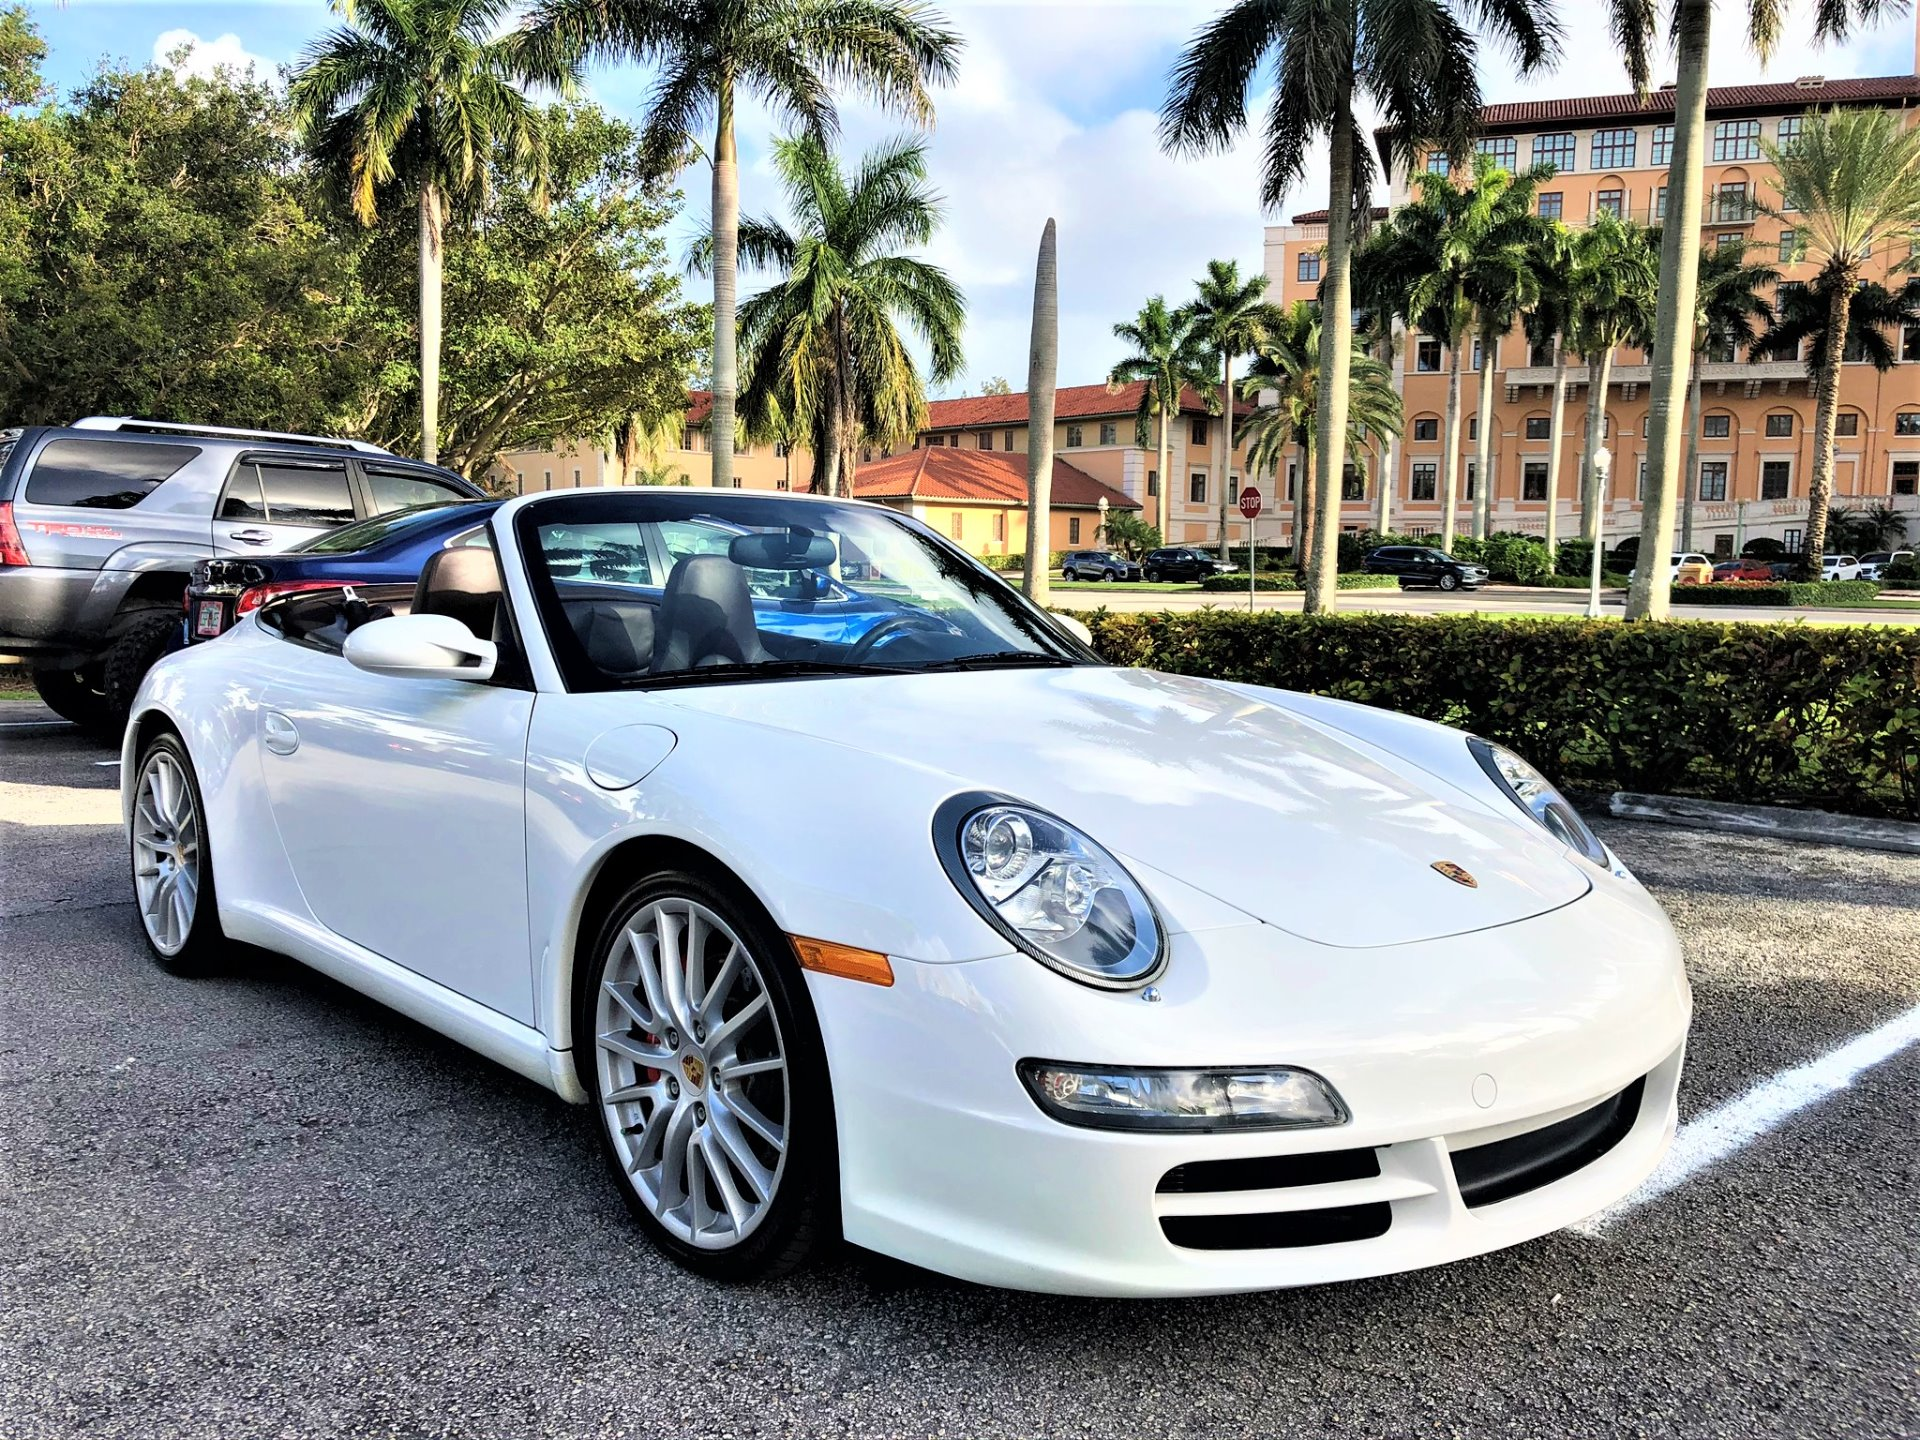 Used 2005 Porsche 911 Carrera S for sale $39,850 at The Gables Sports Cars in Miami FL 33146 3